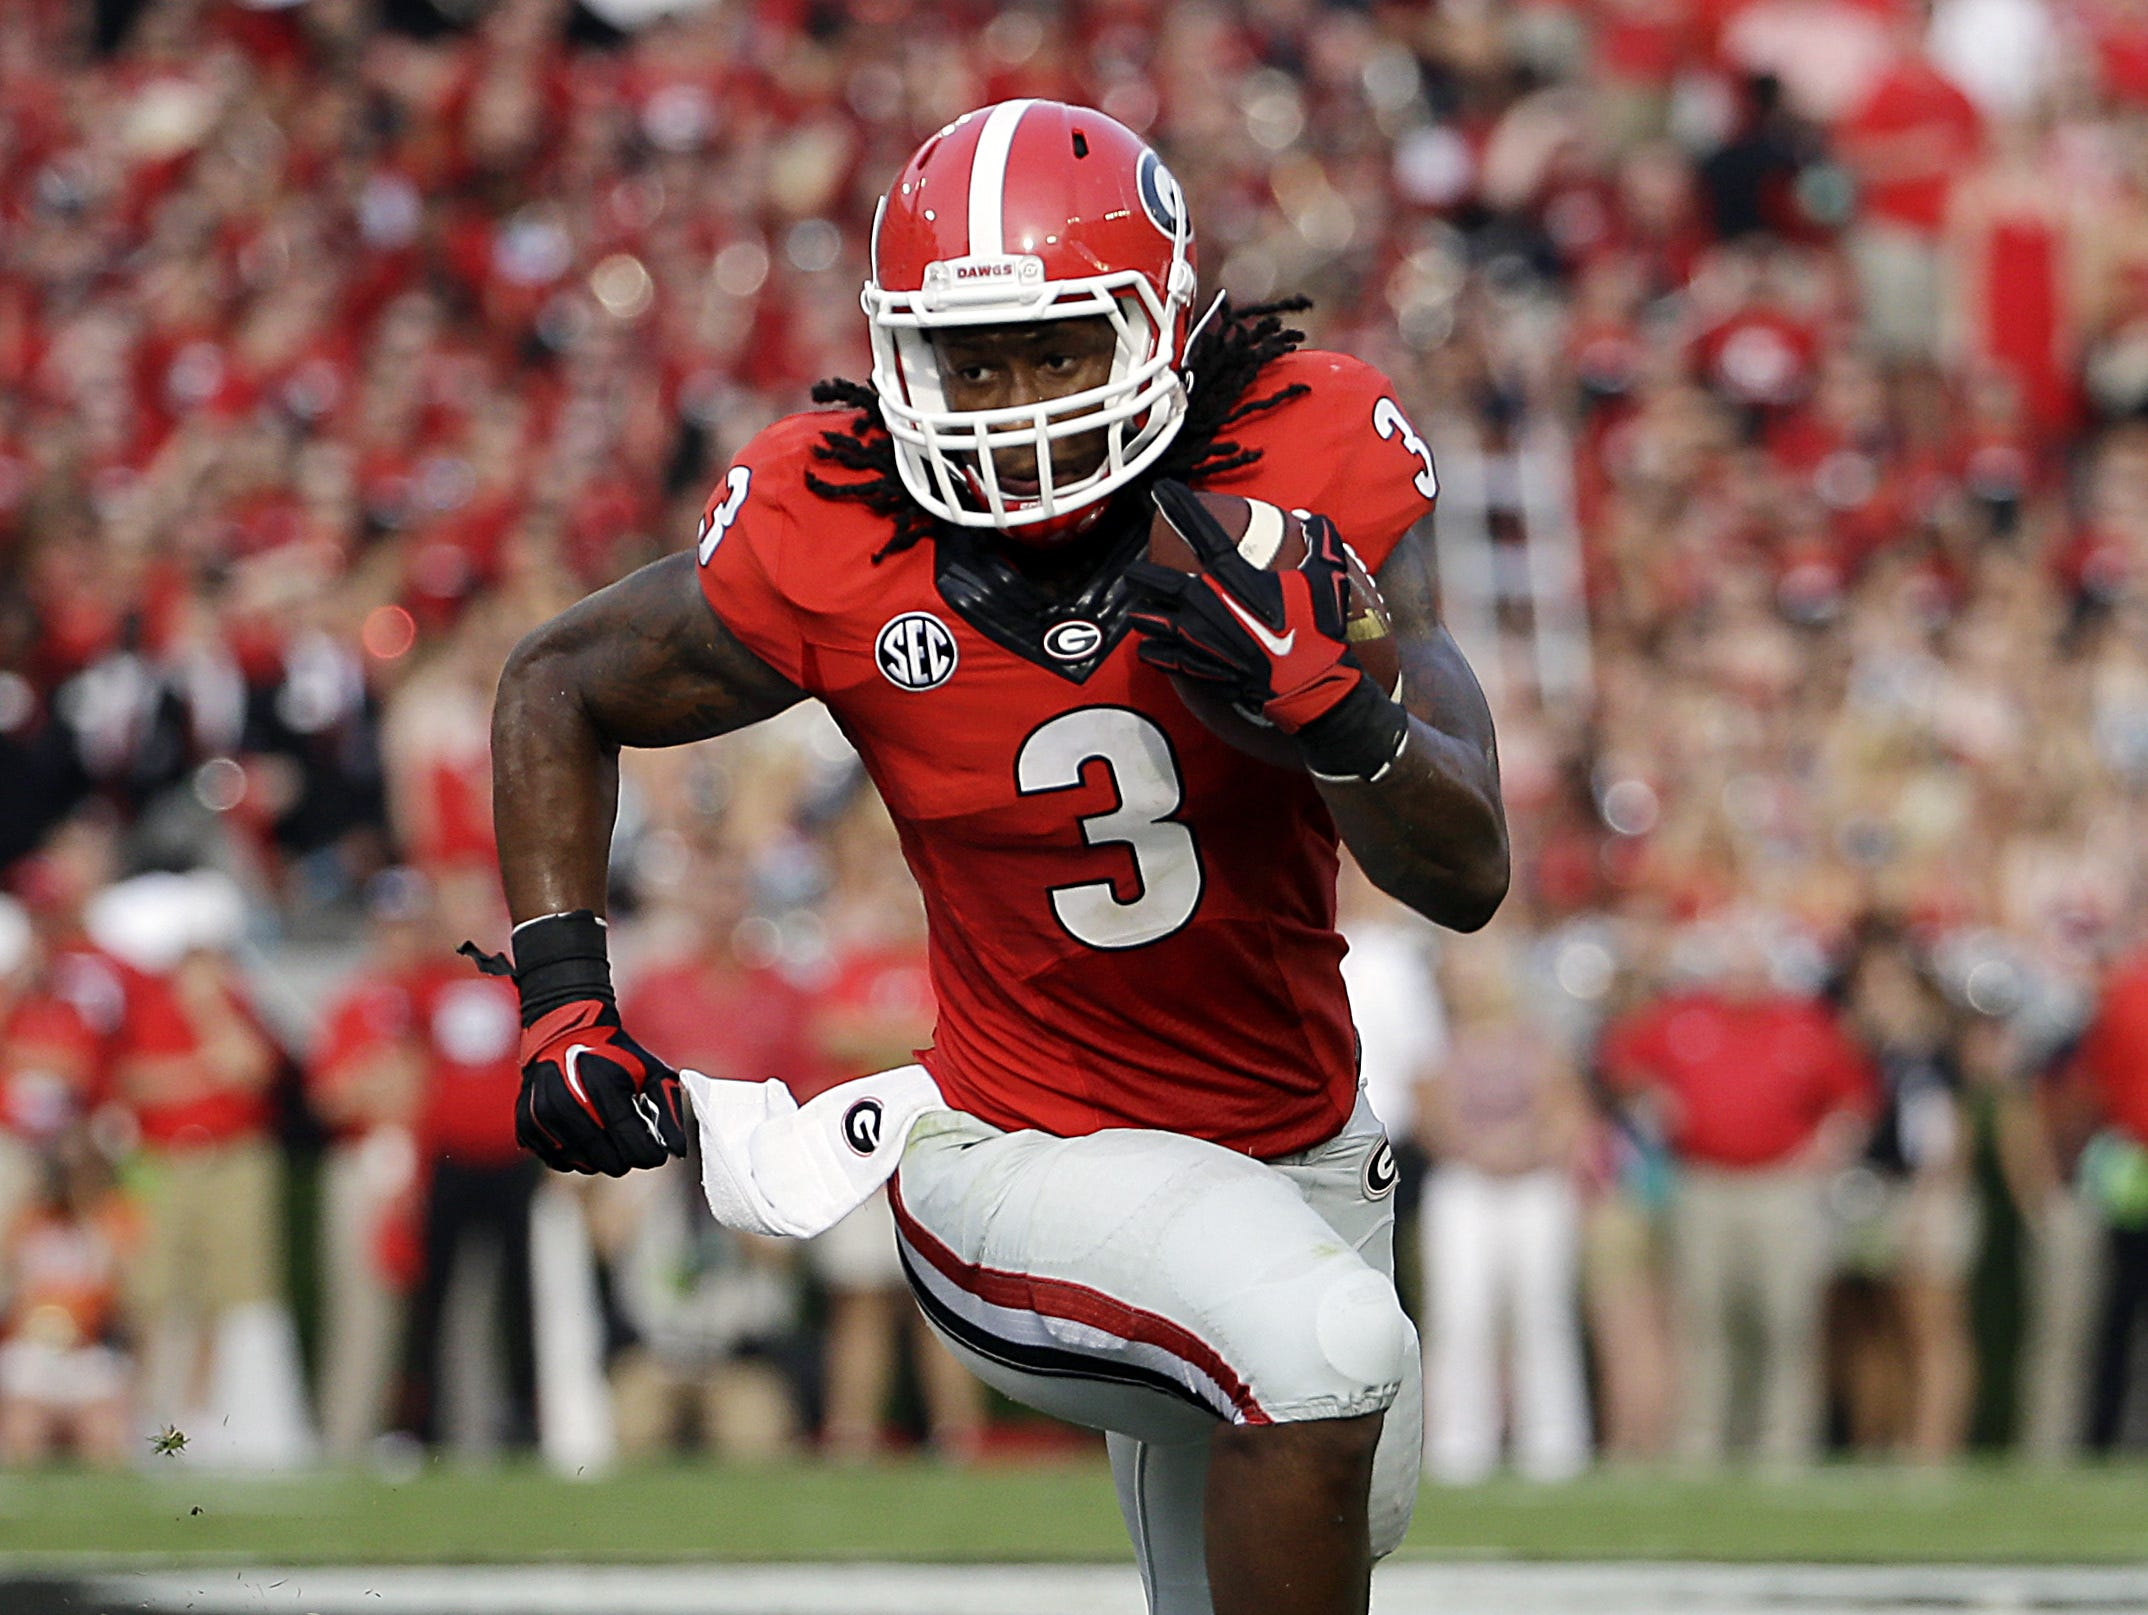 In this Aug. 30, 2014, file photo, Georgia's Todd Gurley runs the ball in the first half of an NCAA college football game against Clemson in Athens, Ga.